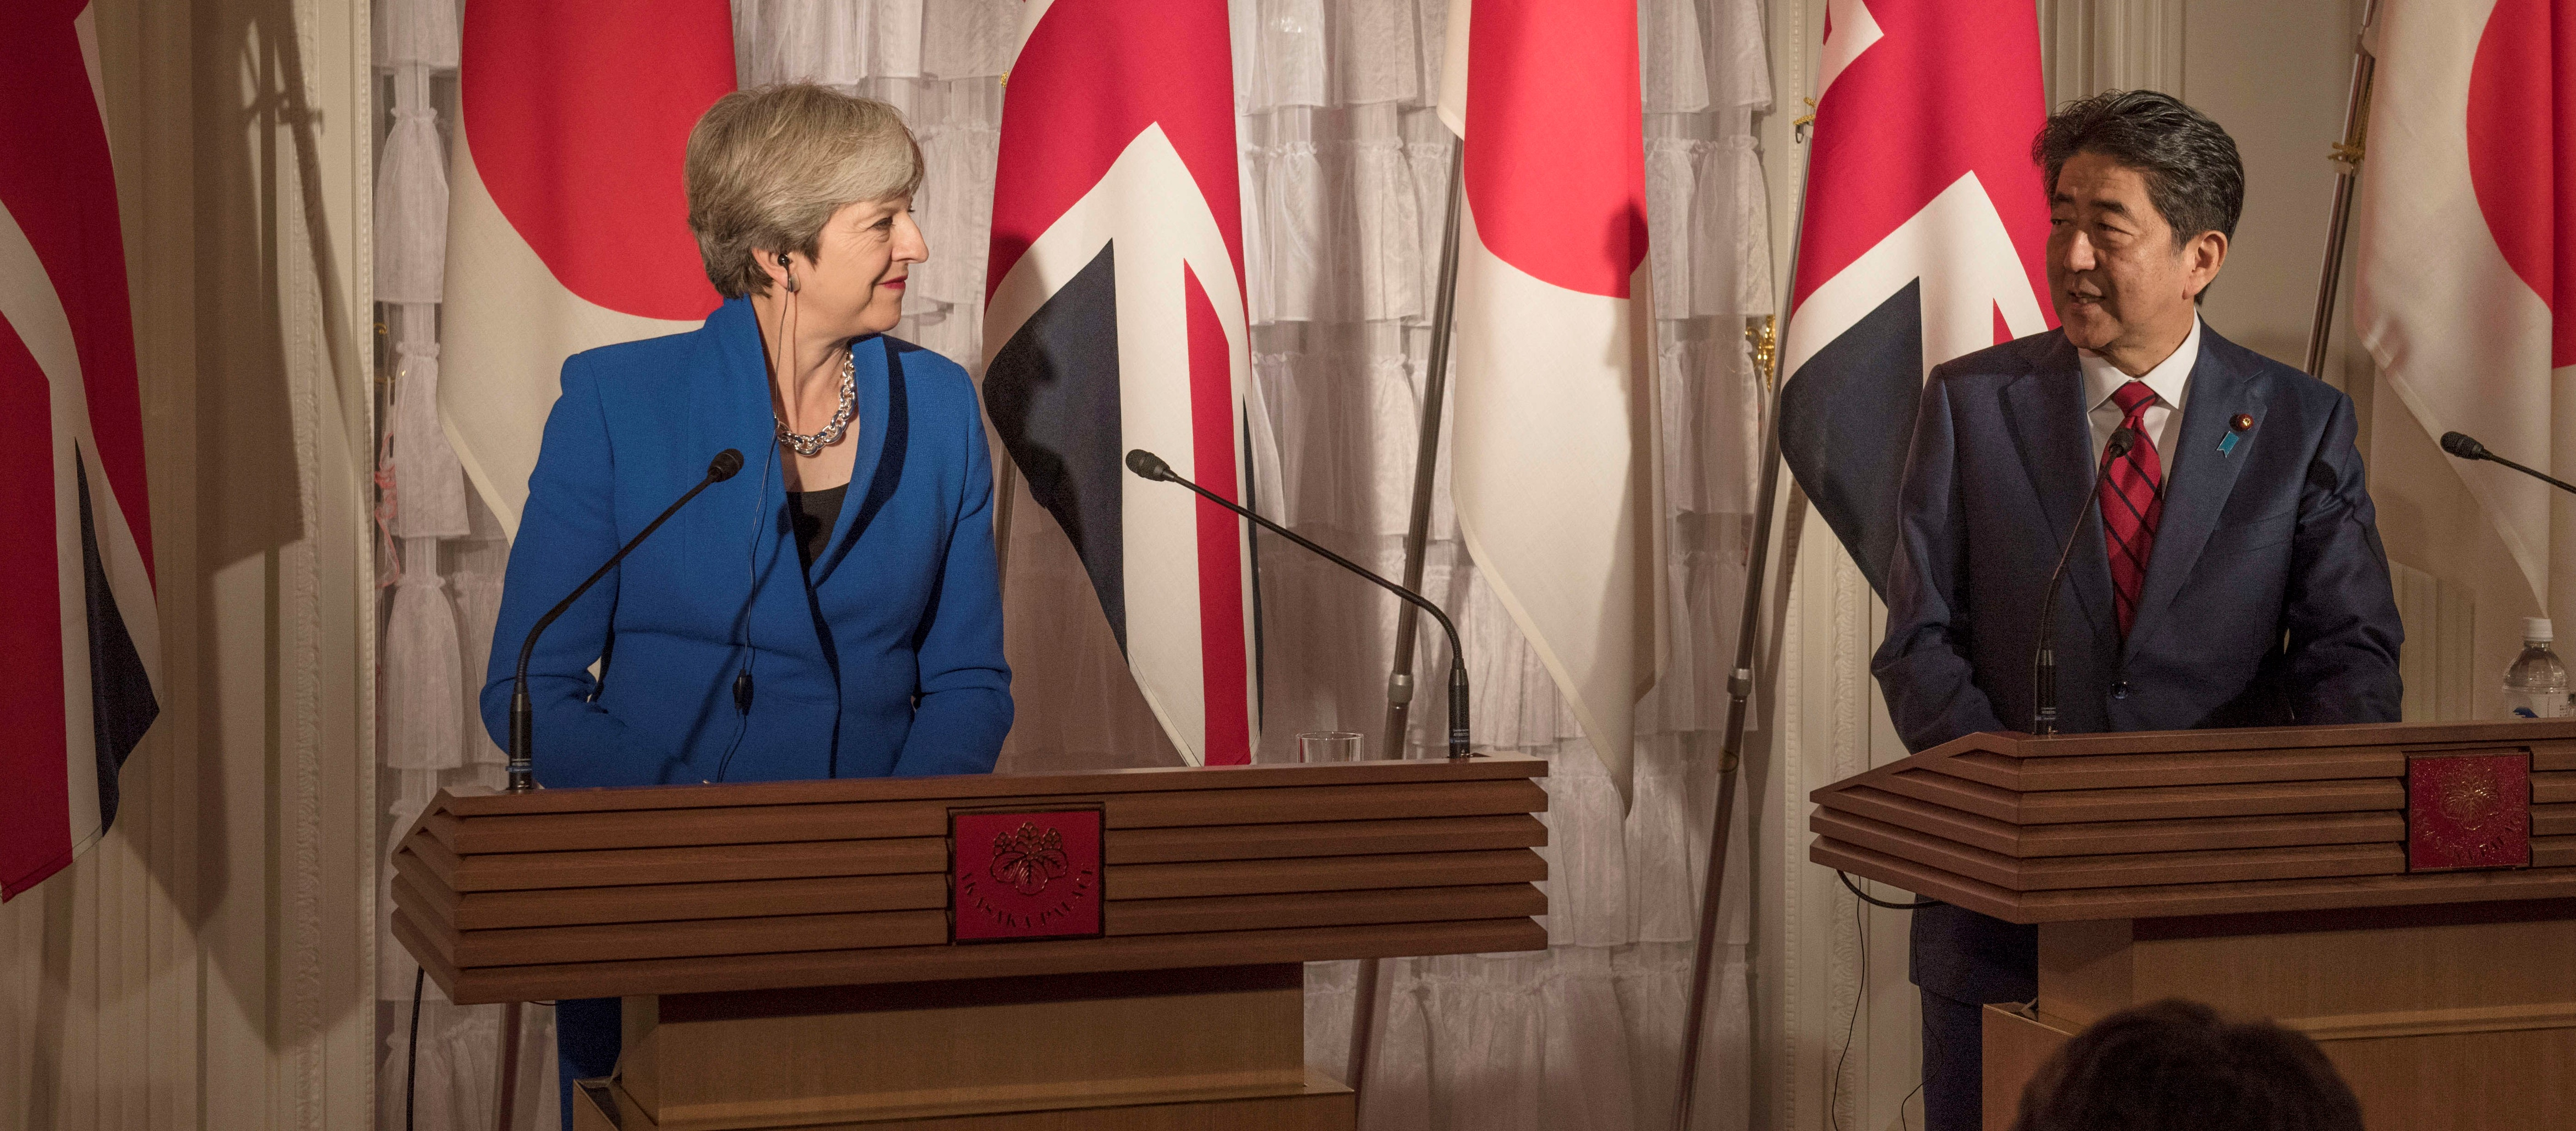 UK Prime Minister Theresa May and Japanese Prime Minister Shinzo Abe, August 2017 (Photo: Number 10/Flickr)